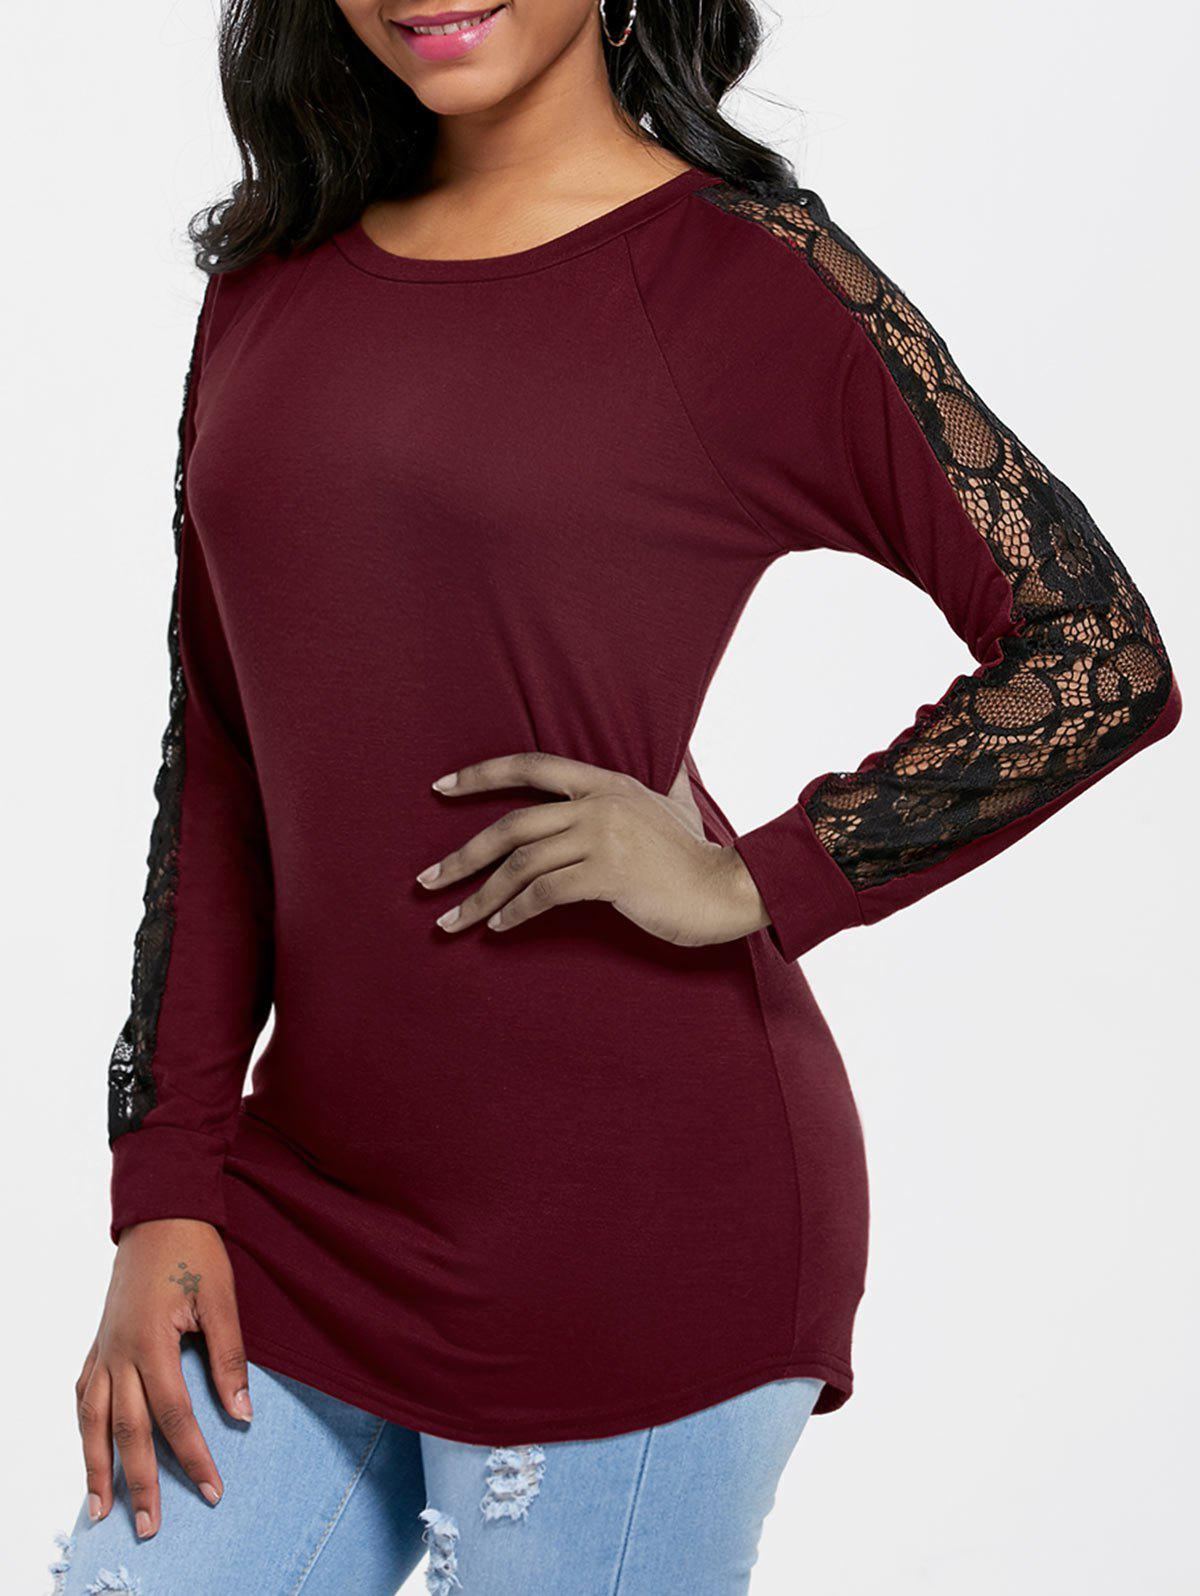 Lace Insert Raglan Sleeve Tunic T-shirt - WINE RED M